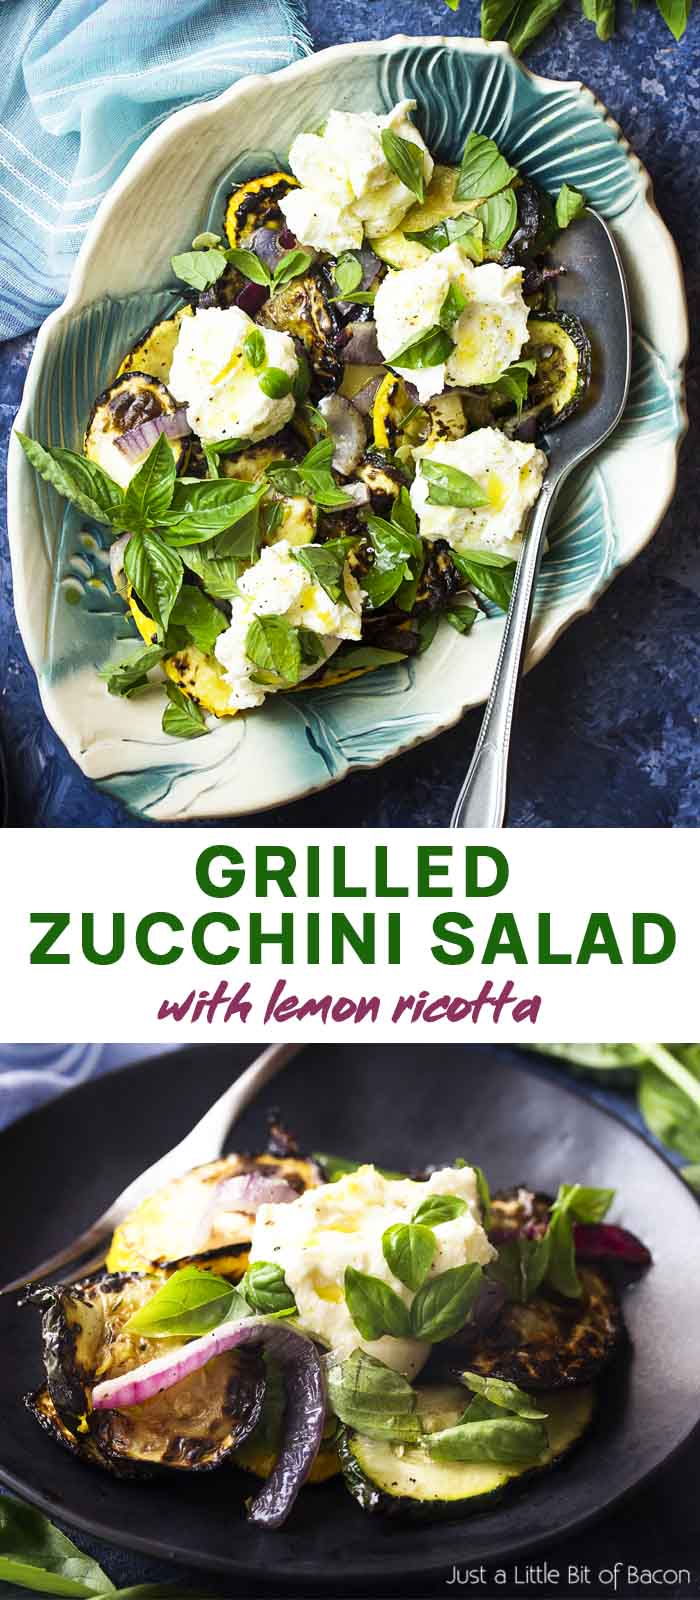 Salad in a serving plate and on a small plate with text overlay Grilled Zucchini Salad.